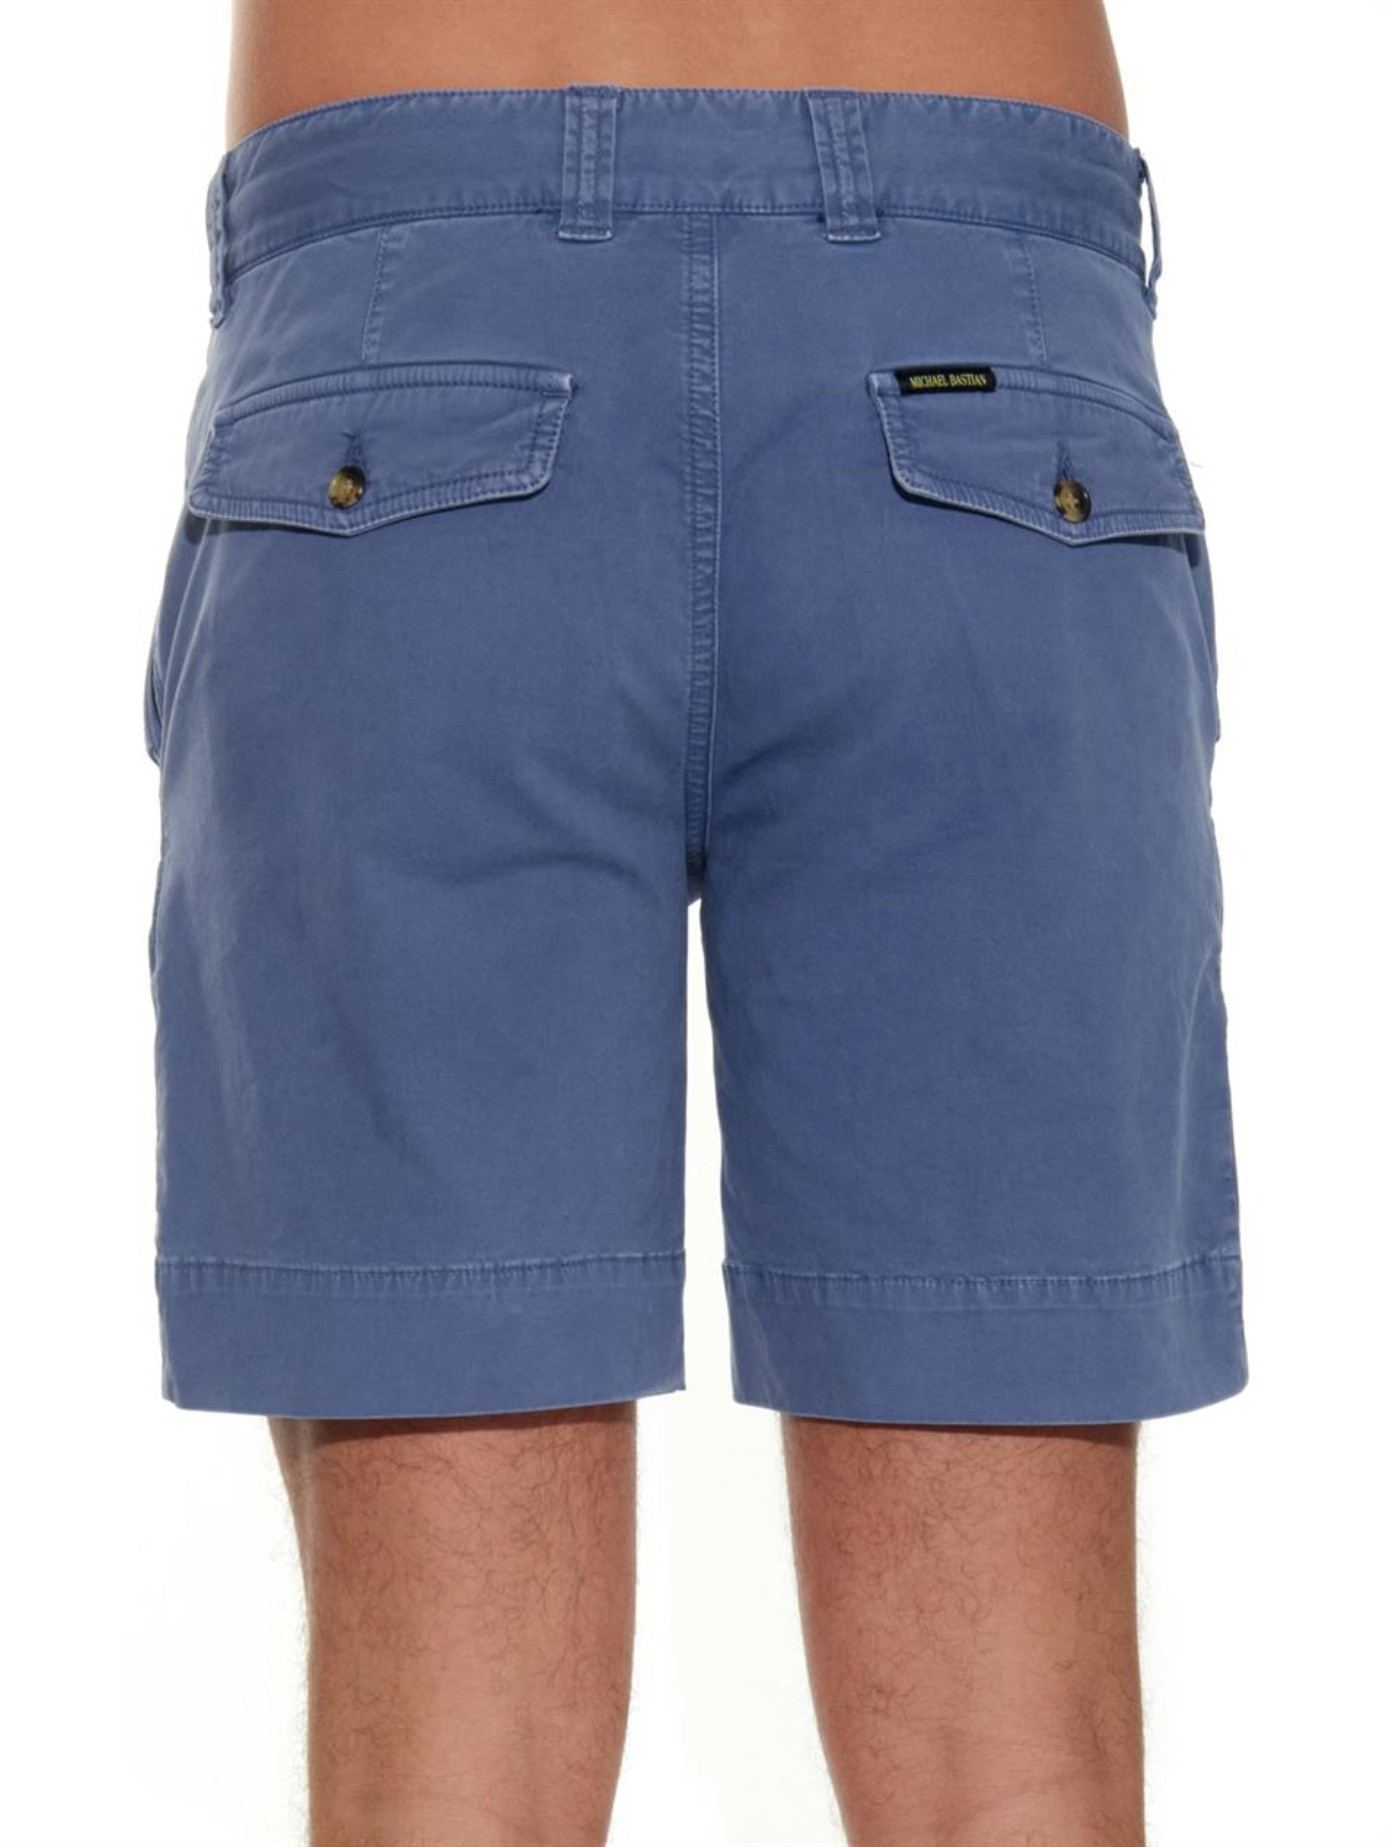 Made from pure cotton, these clean-cut shorts are a wear-with-everything option for warm days Elasticated waist Side pockets Welt pockets, back Length of .